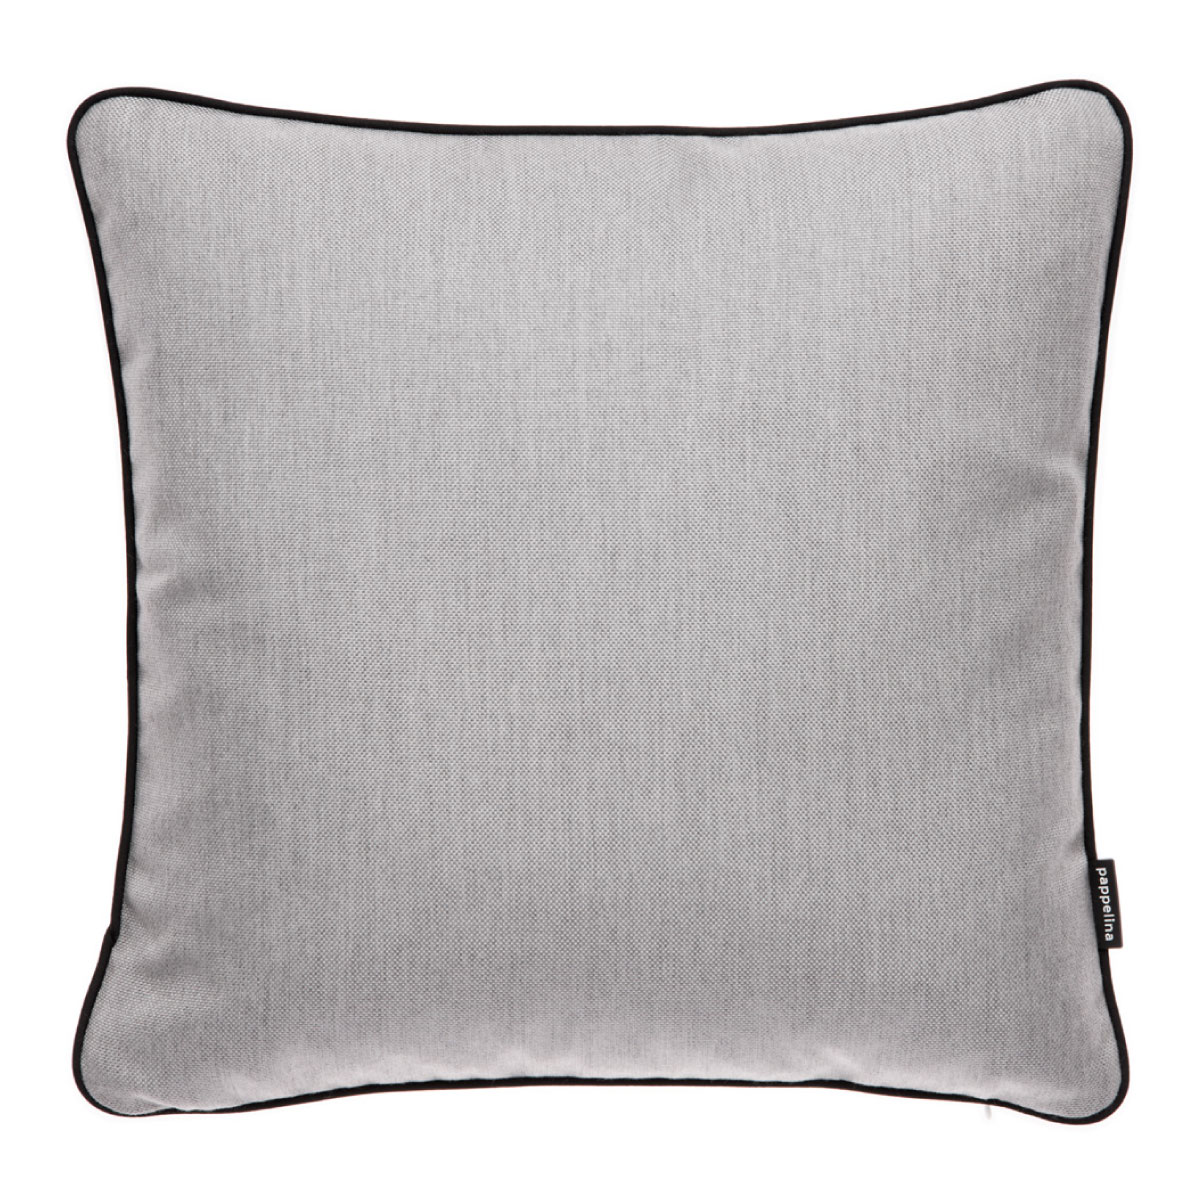 abaca reversible black products print grey outdoor pillow pillows accessories covers pid gray textiles cushion